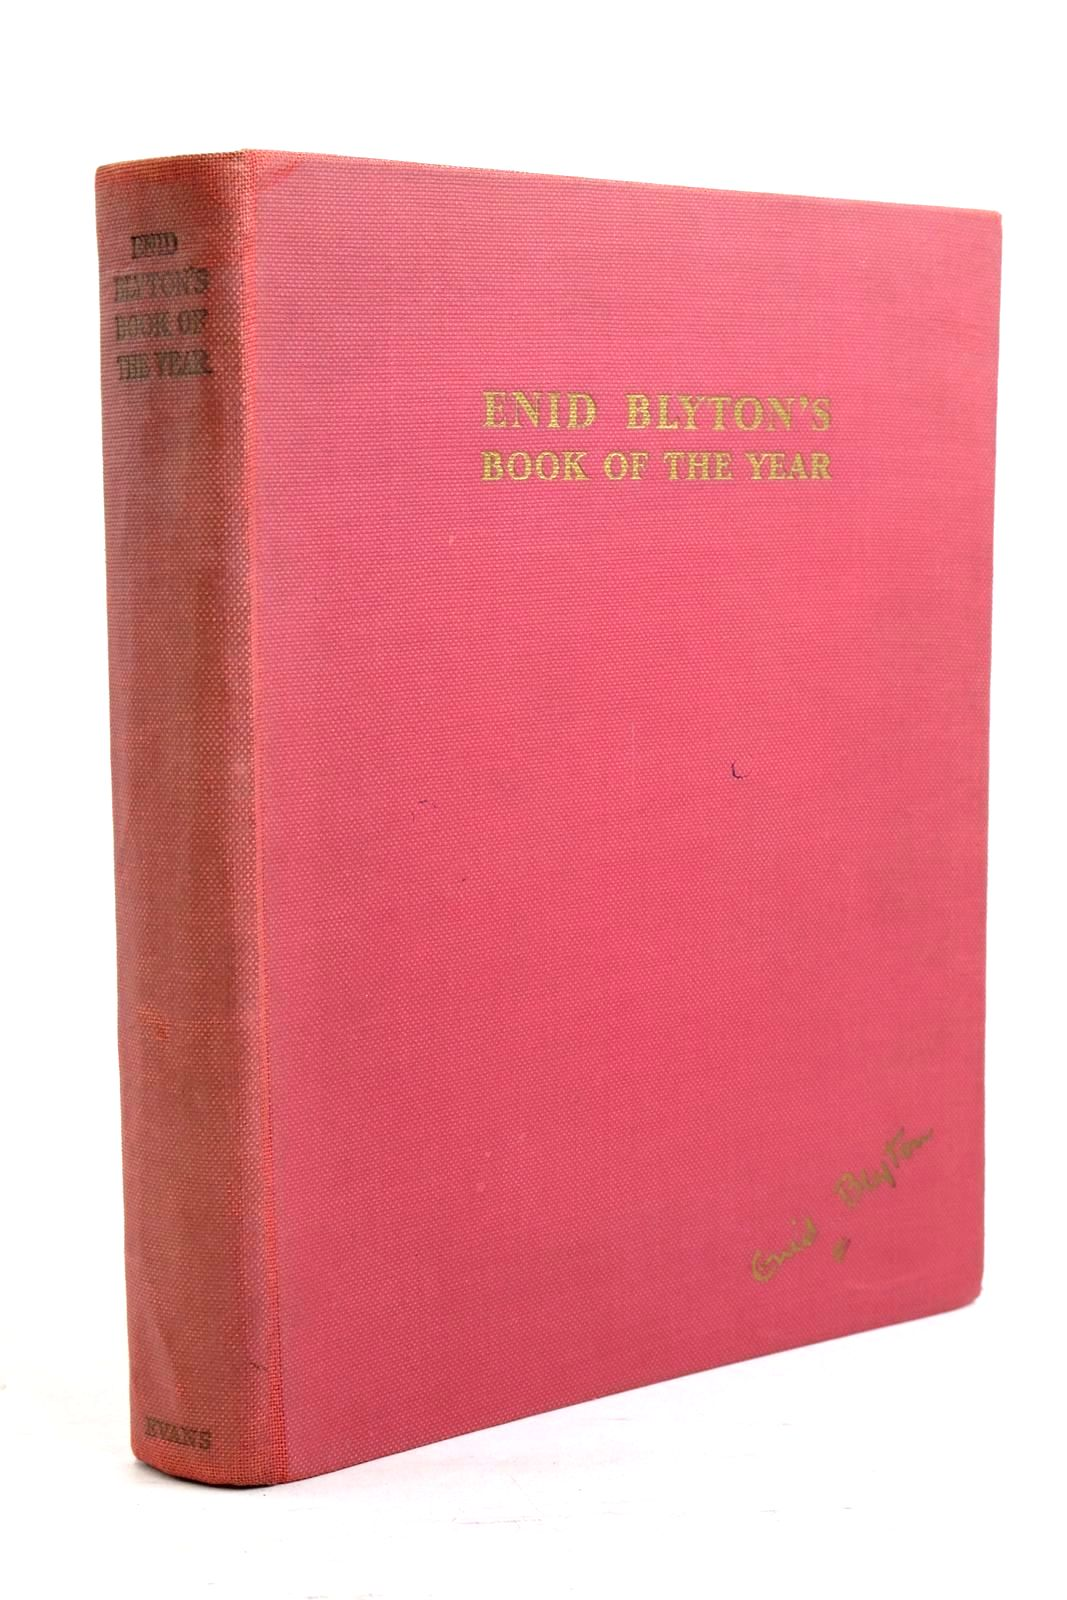 Photo of ENID BLYTON'S BOOK OF THE YEAR written by Blyton, Enid illustrated by Soper, Eileen published by Evans Brothers Limited (STOCK CODE: 1320756)  for sale by Stella & Rose's Books